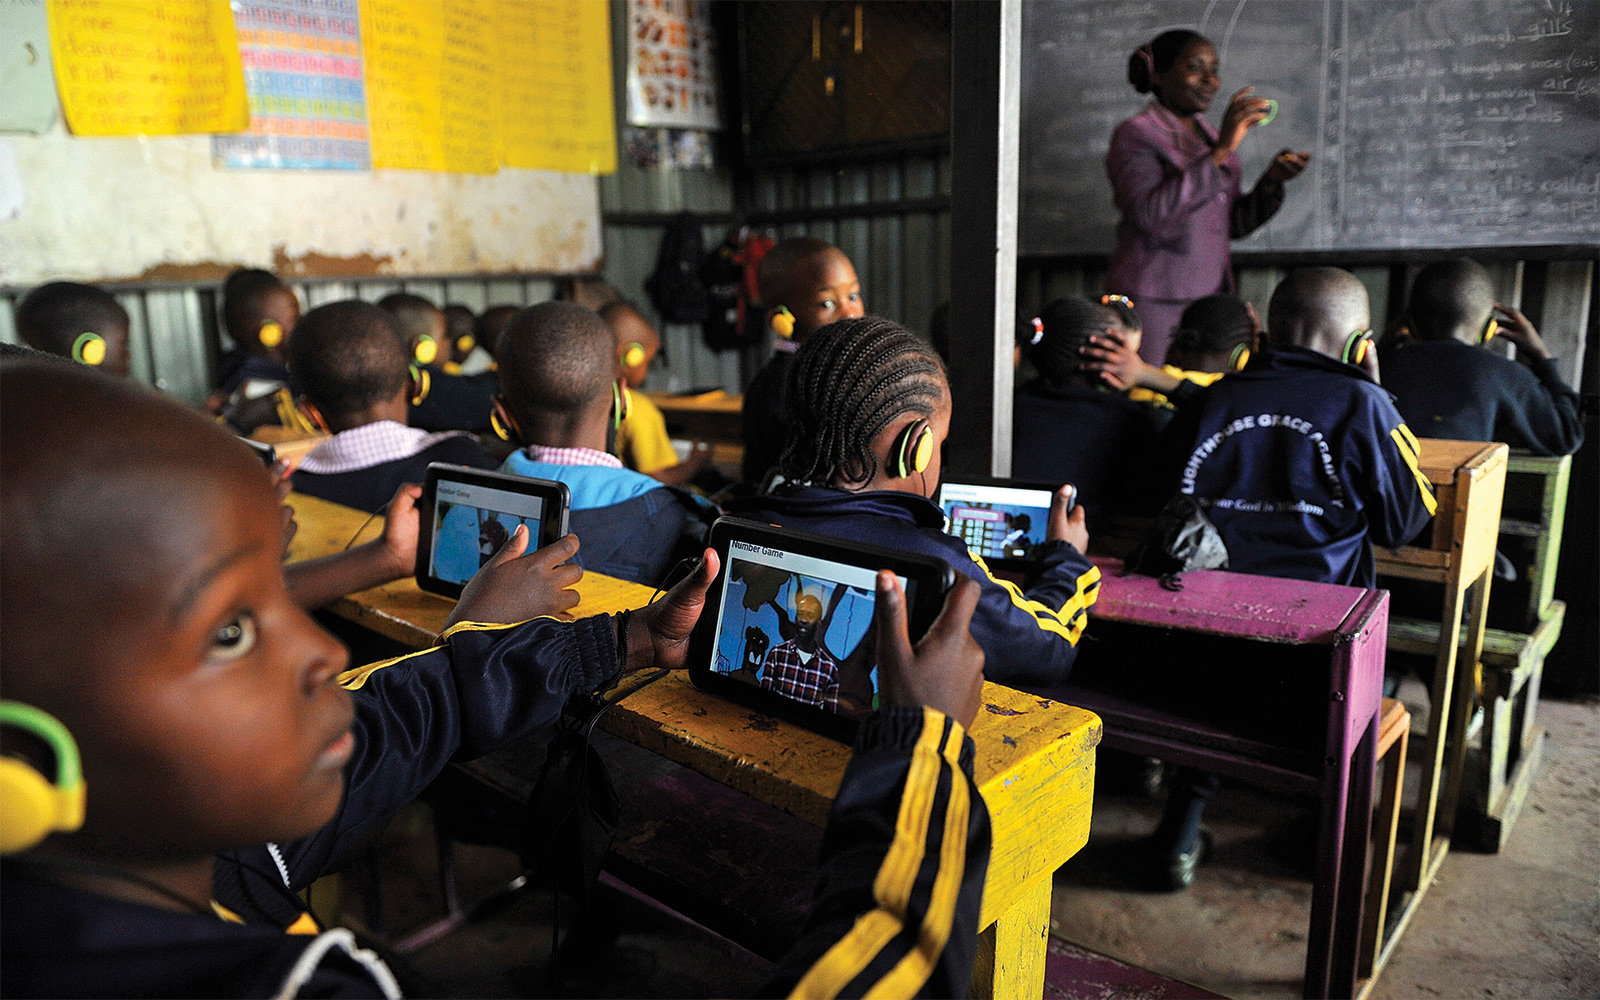 A Kenyan startup called BRCK, a technology company that offers low-cost internet connectivity, has partnered with schools to give students access to technology in the classroom. Altman says that BRCK is a startup worth watching.